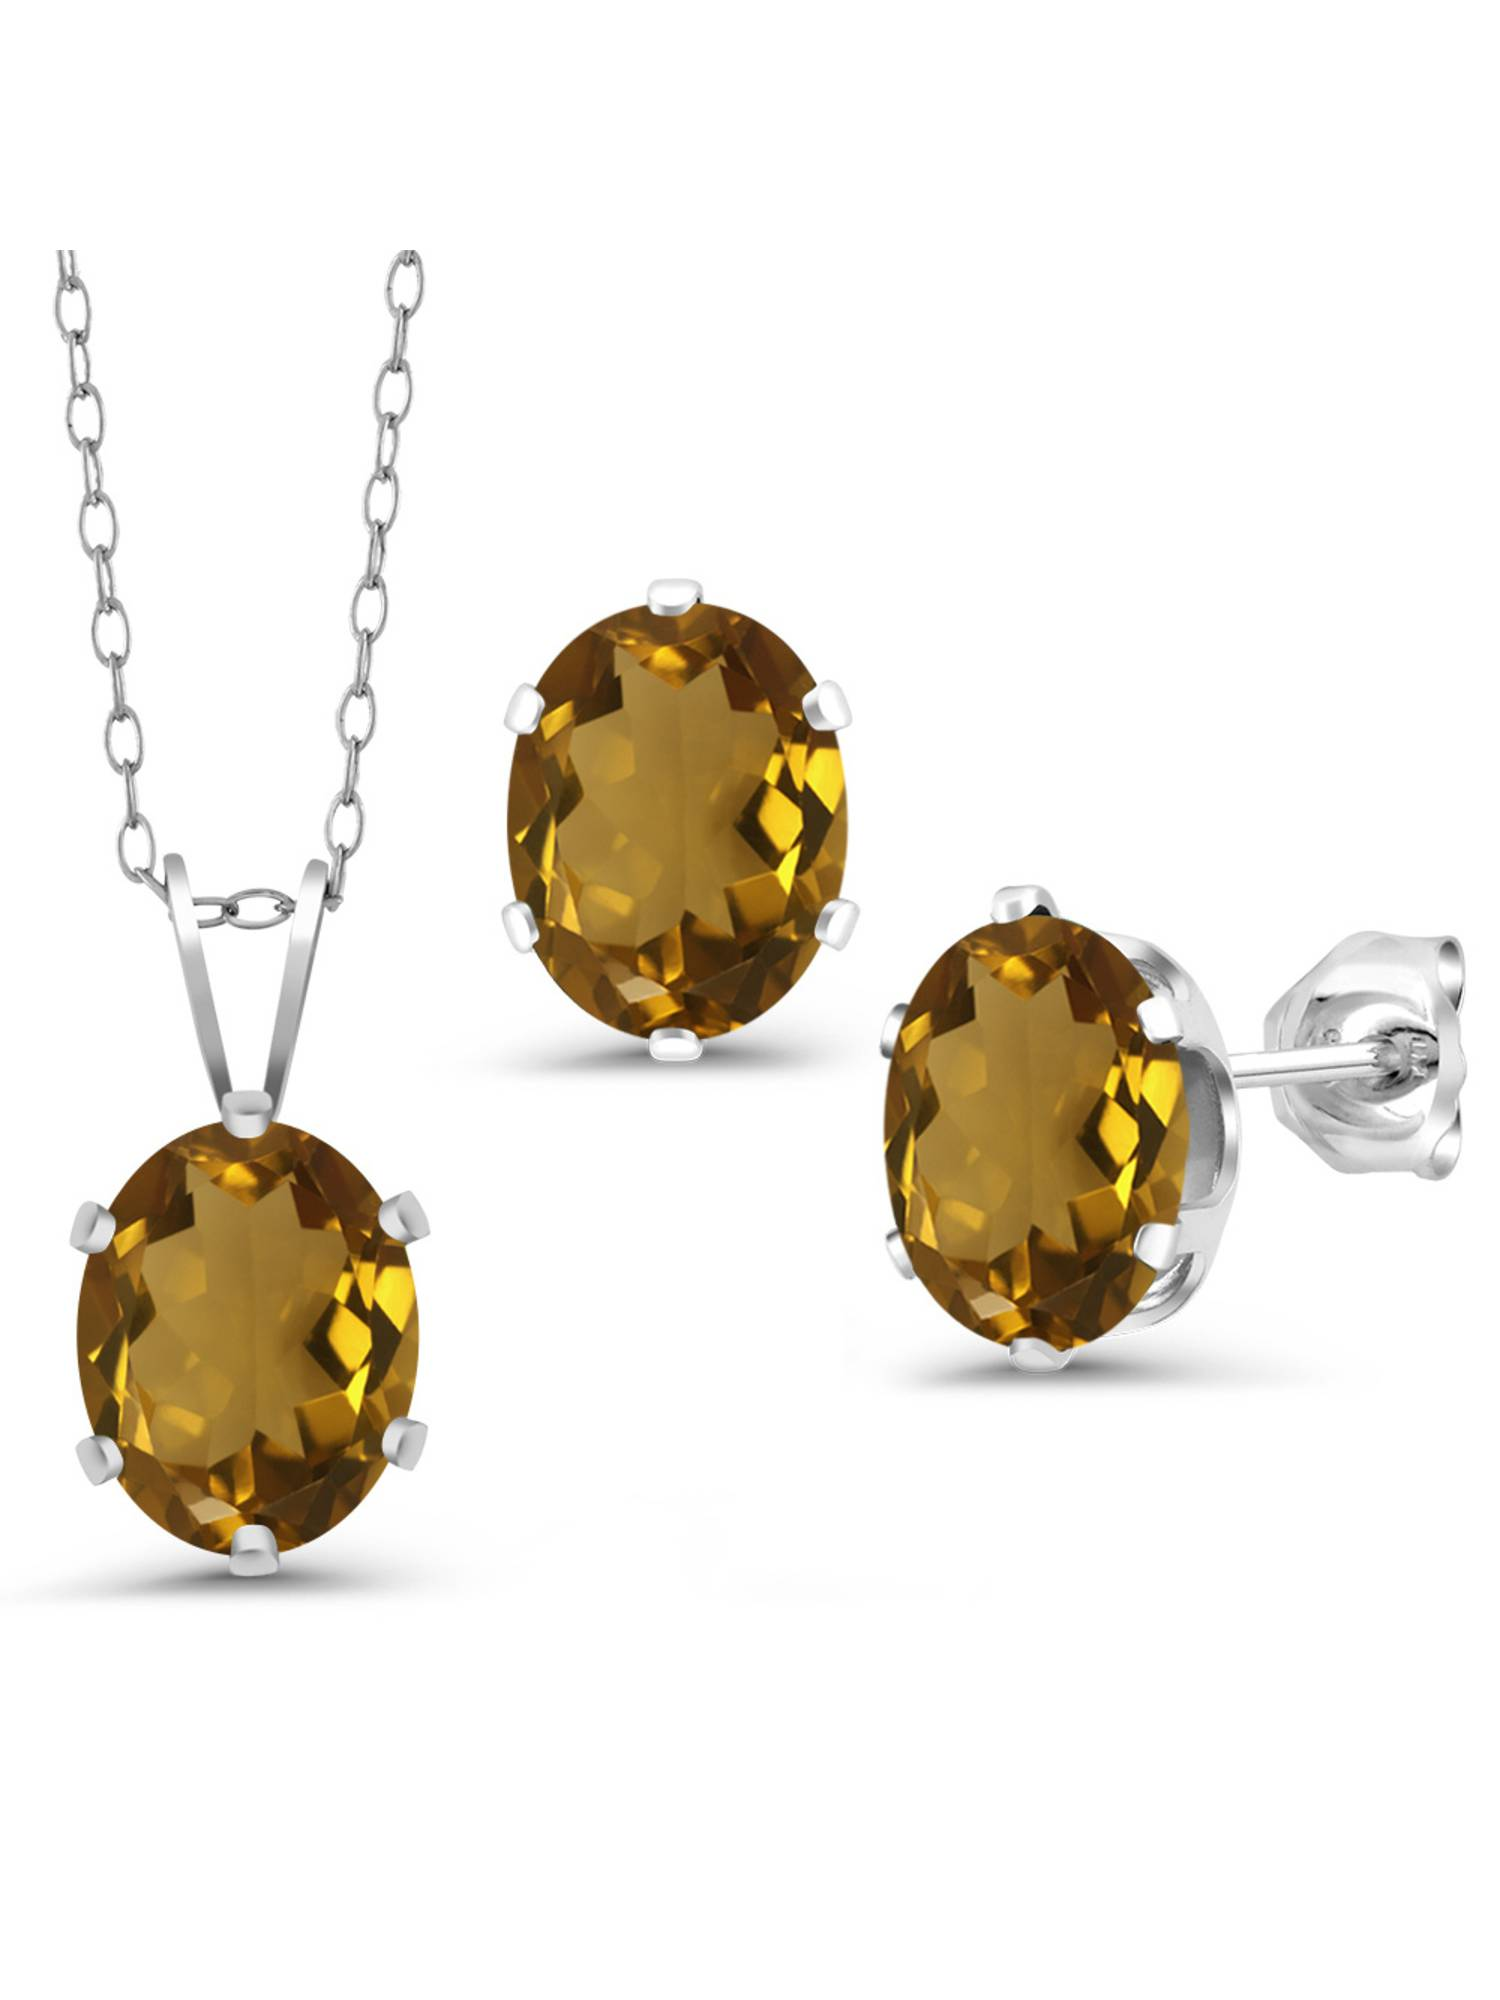 3.00 Ct Oval Whiskey Quartz 925 Sterling Silver Pendant Earrings Set With Chain